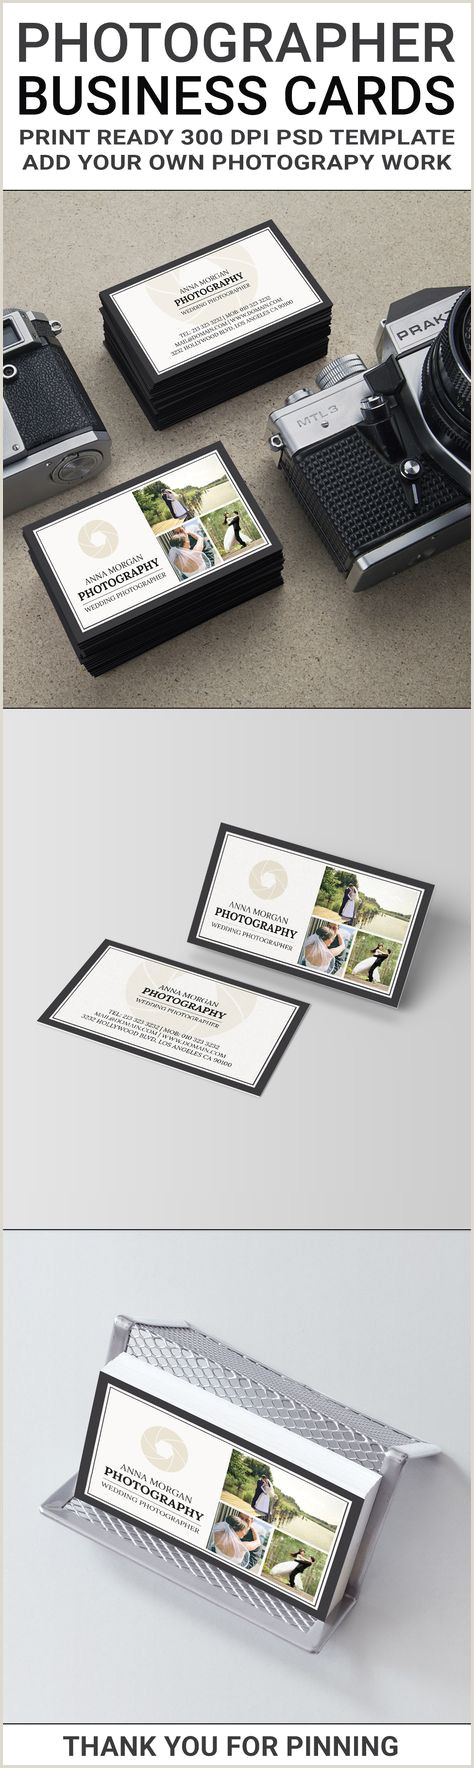 Best Business Cards Website For Photographers Trendy Graphy Logo Design Graphers Business Cards